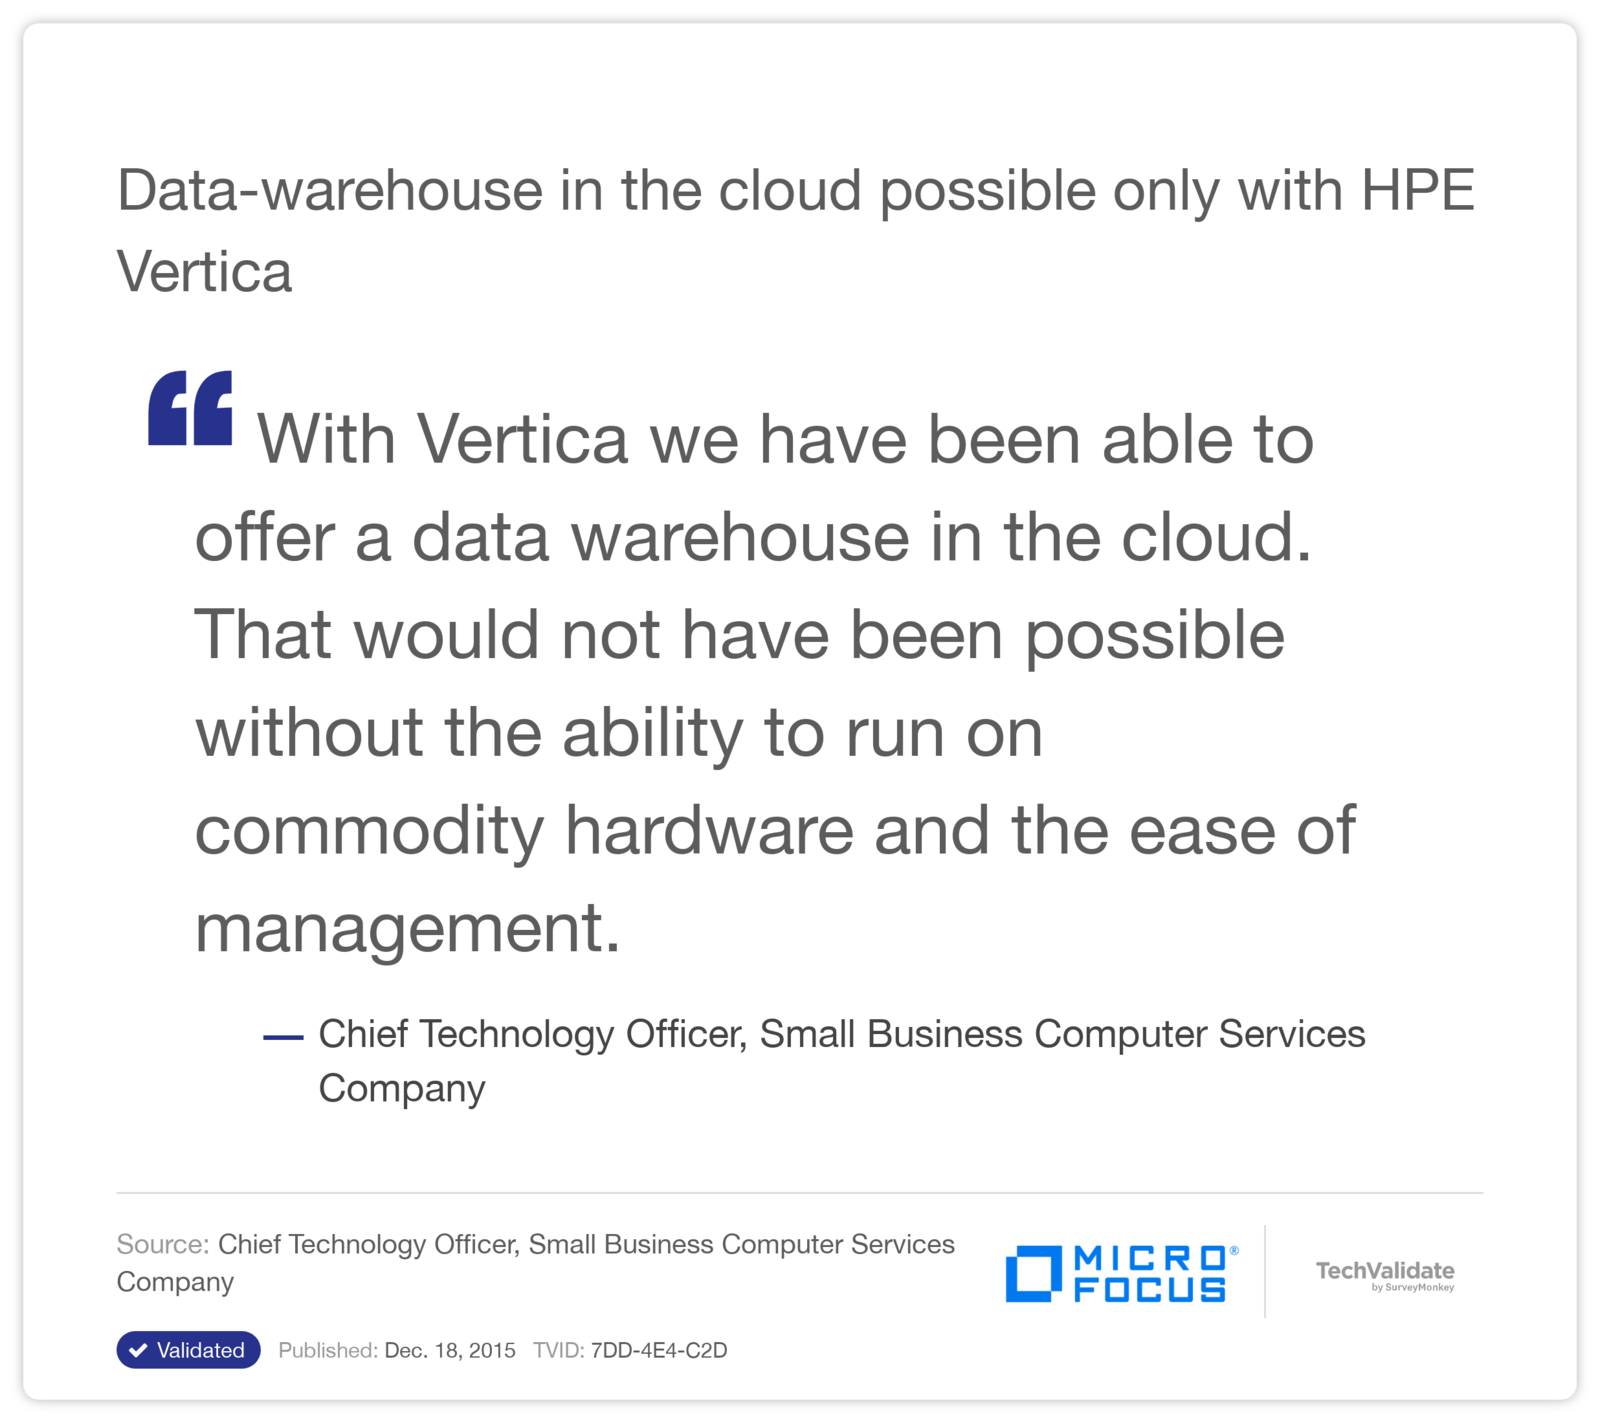 Data-warehouse in the cloud possible only with HPE Vertica